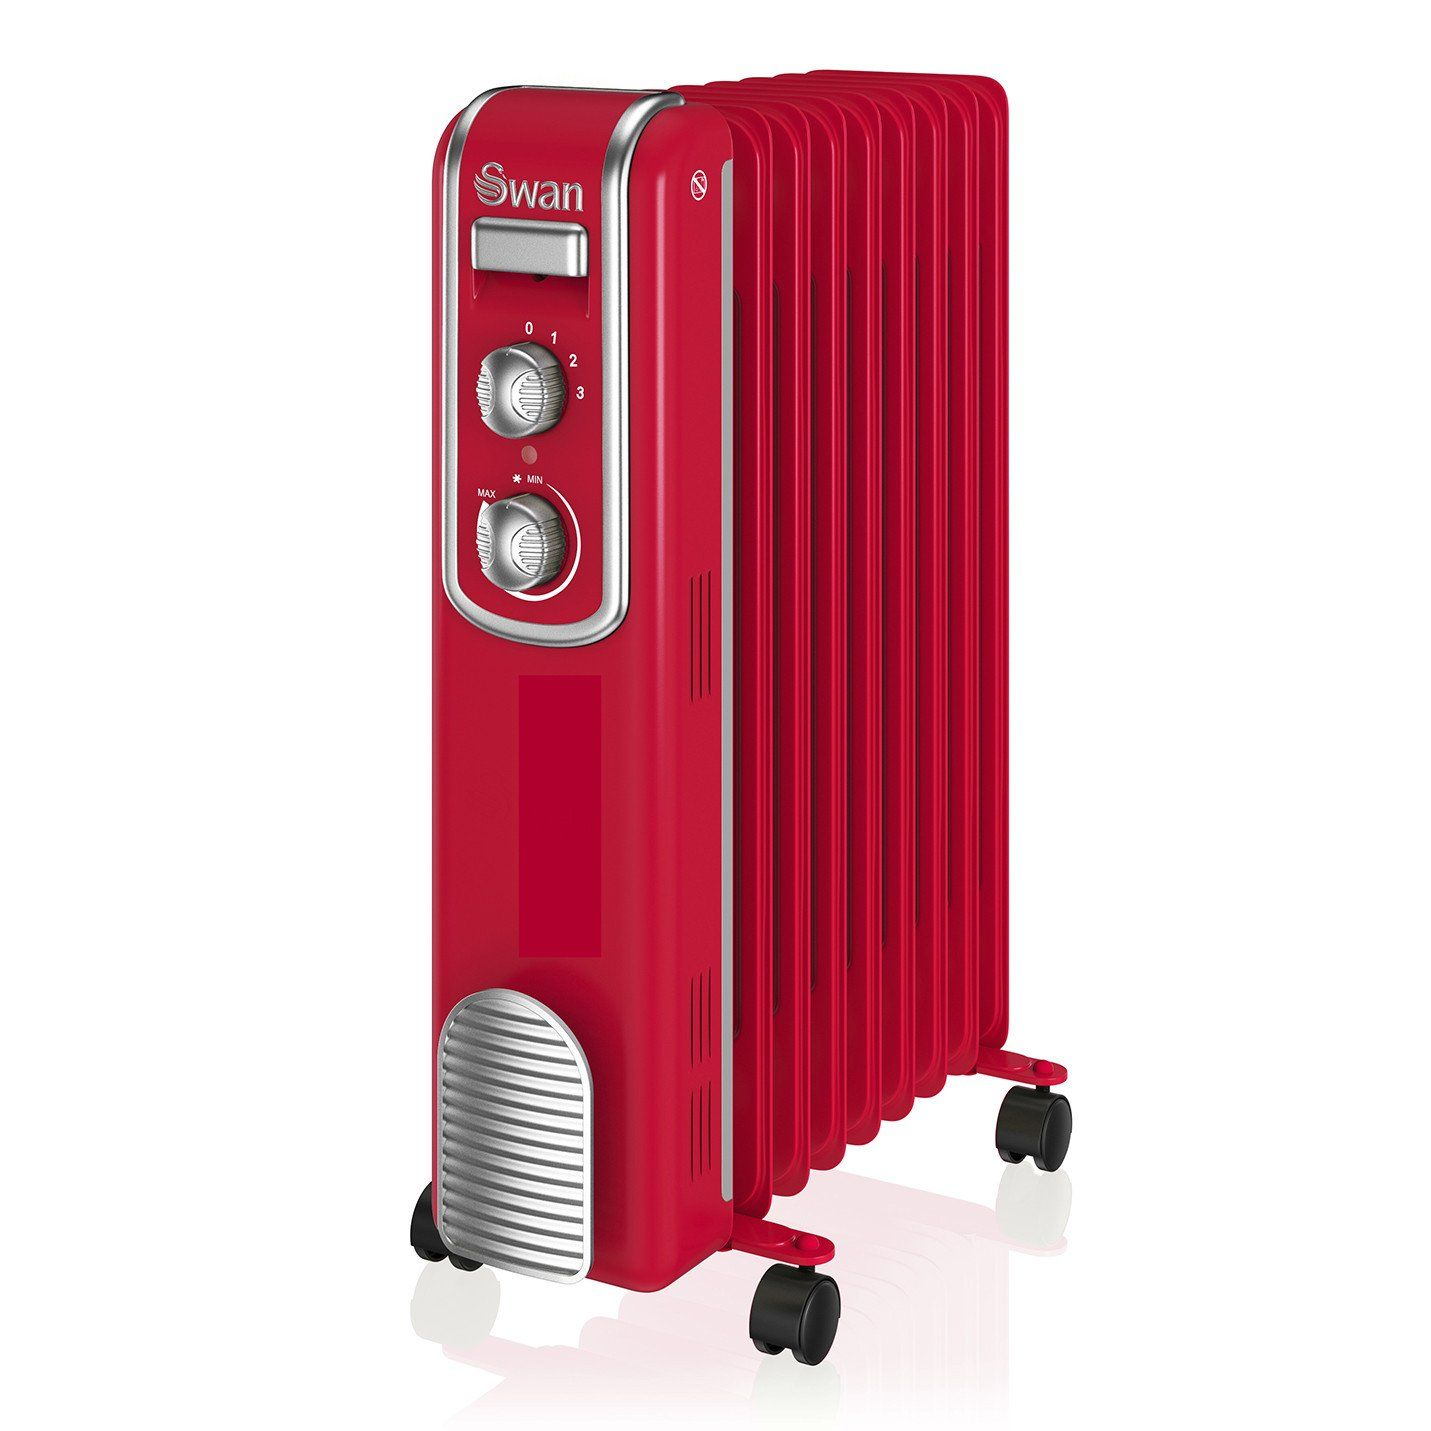 Swan 9 Finned Oil Filled Radiator Red Electric Heater Wall Mounted Heater Oil Filled Radiator